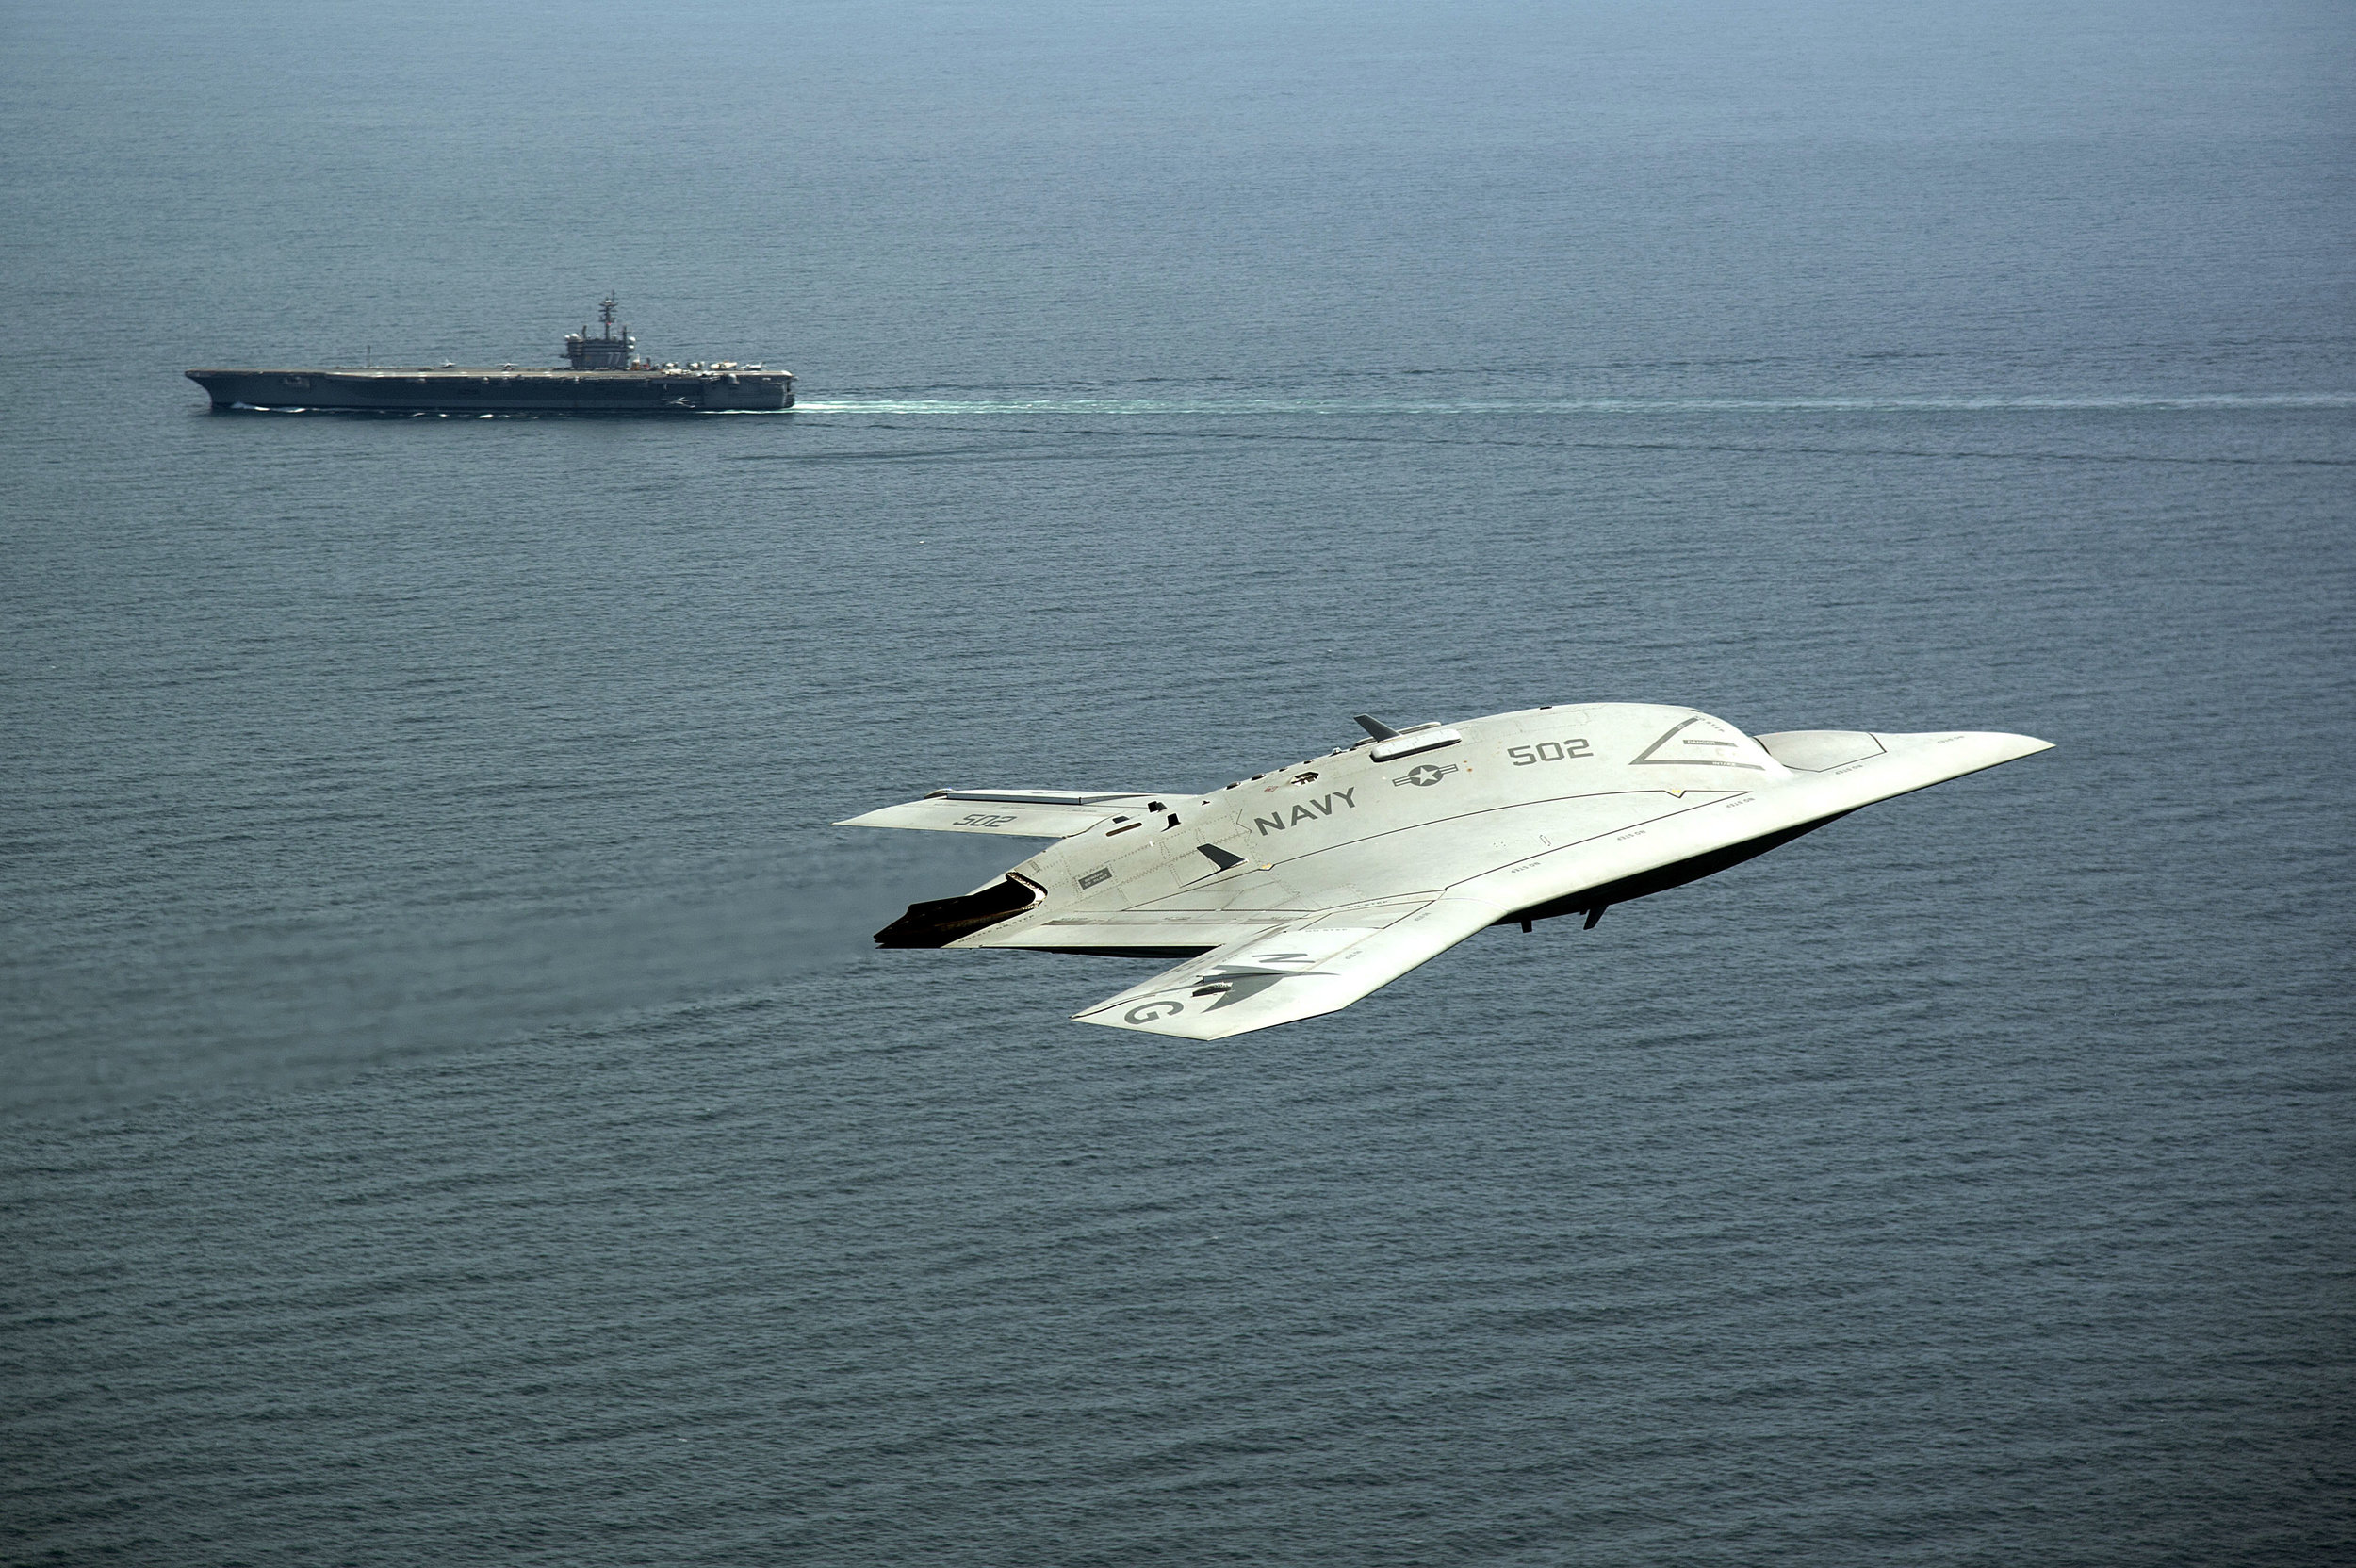 An X-47B Unmanned Combat Air System demonstrator flies near the aircraft carrier USS George H.W. Bush. | U.S. Navy photo by Erik Hildebrandt